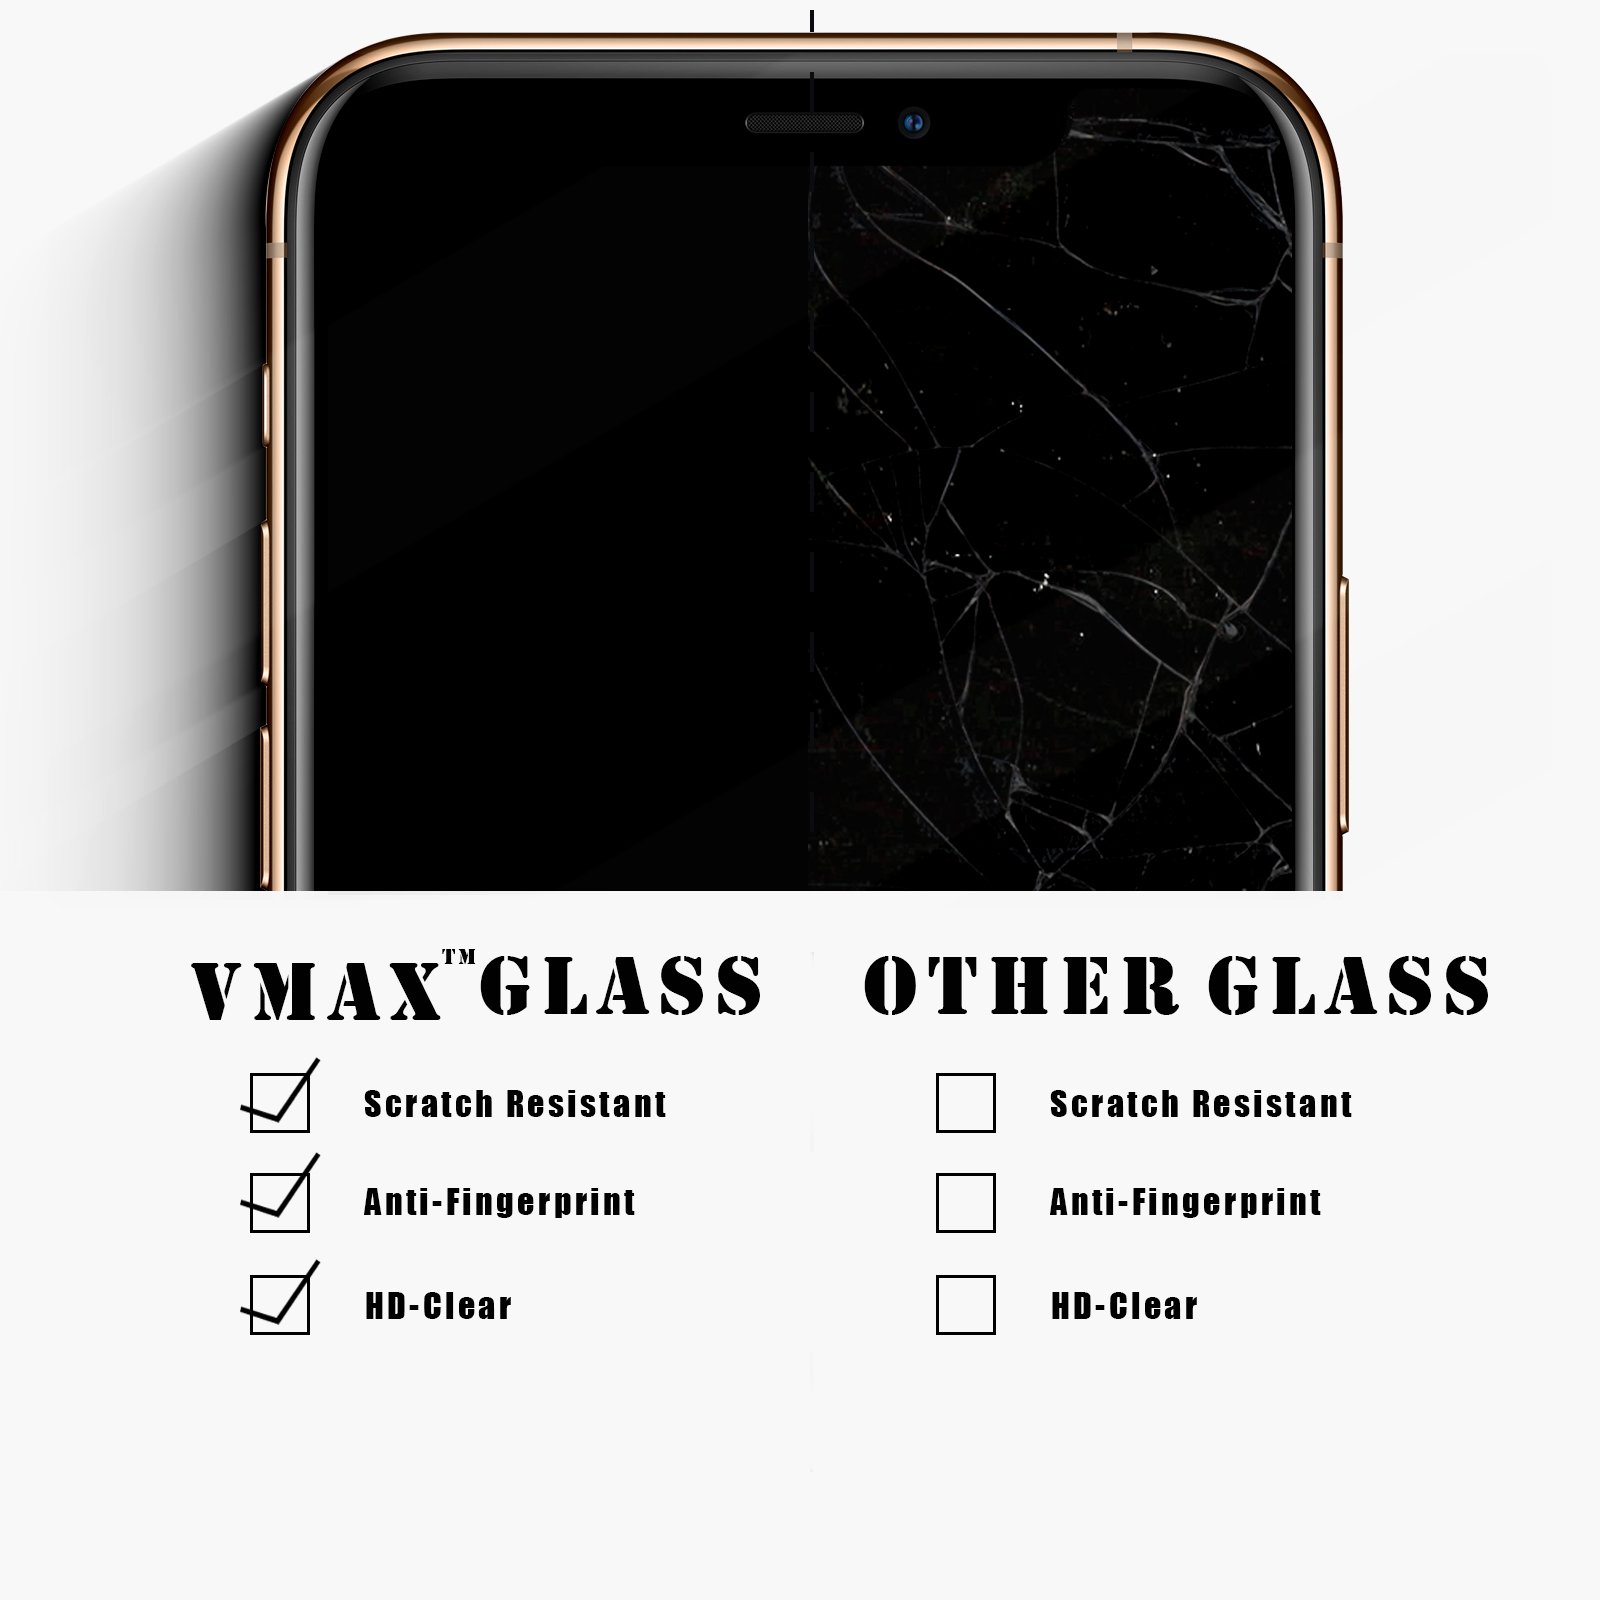 Vmax Tempered Glass screen protectors for iPhone 11